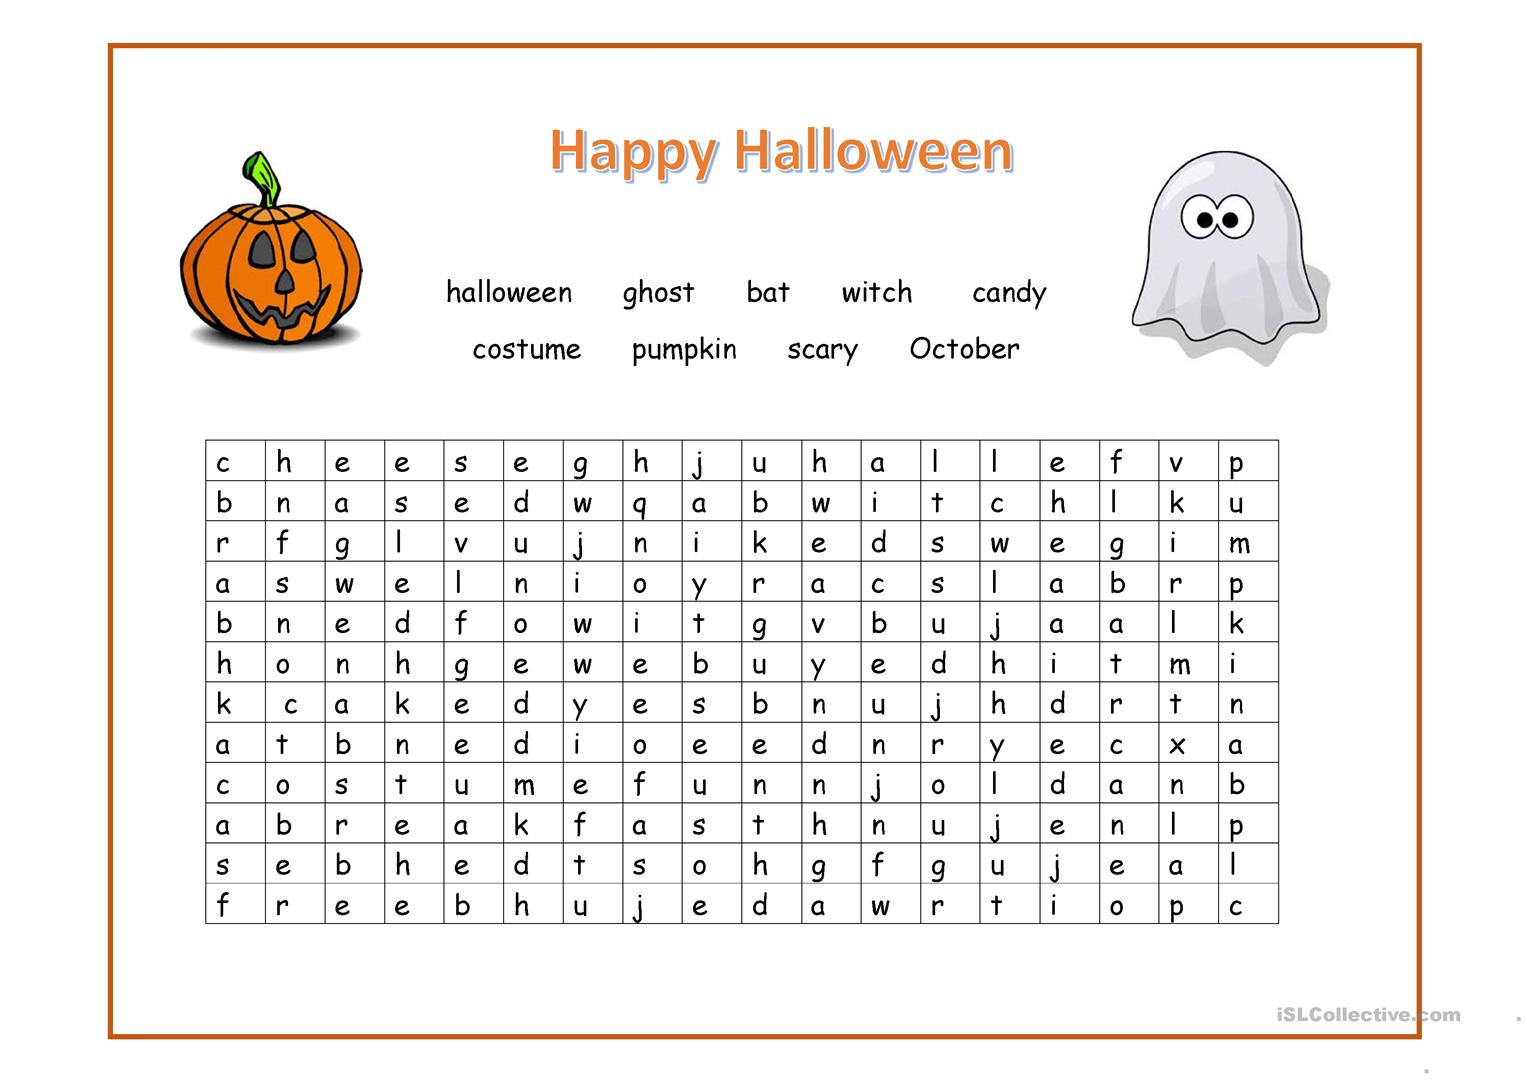 Happy Halloween Wordsearch Worksheet